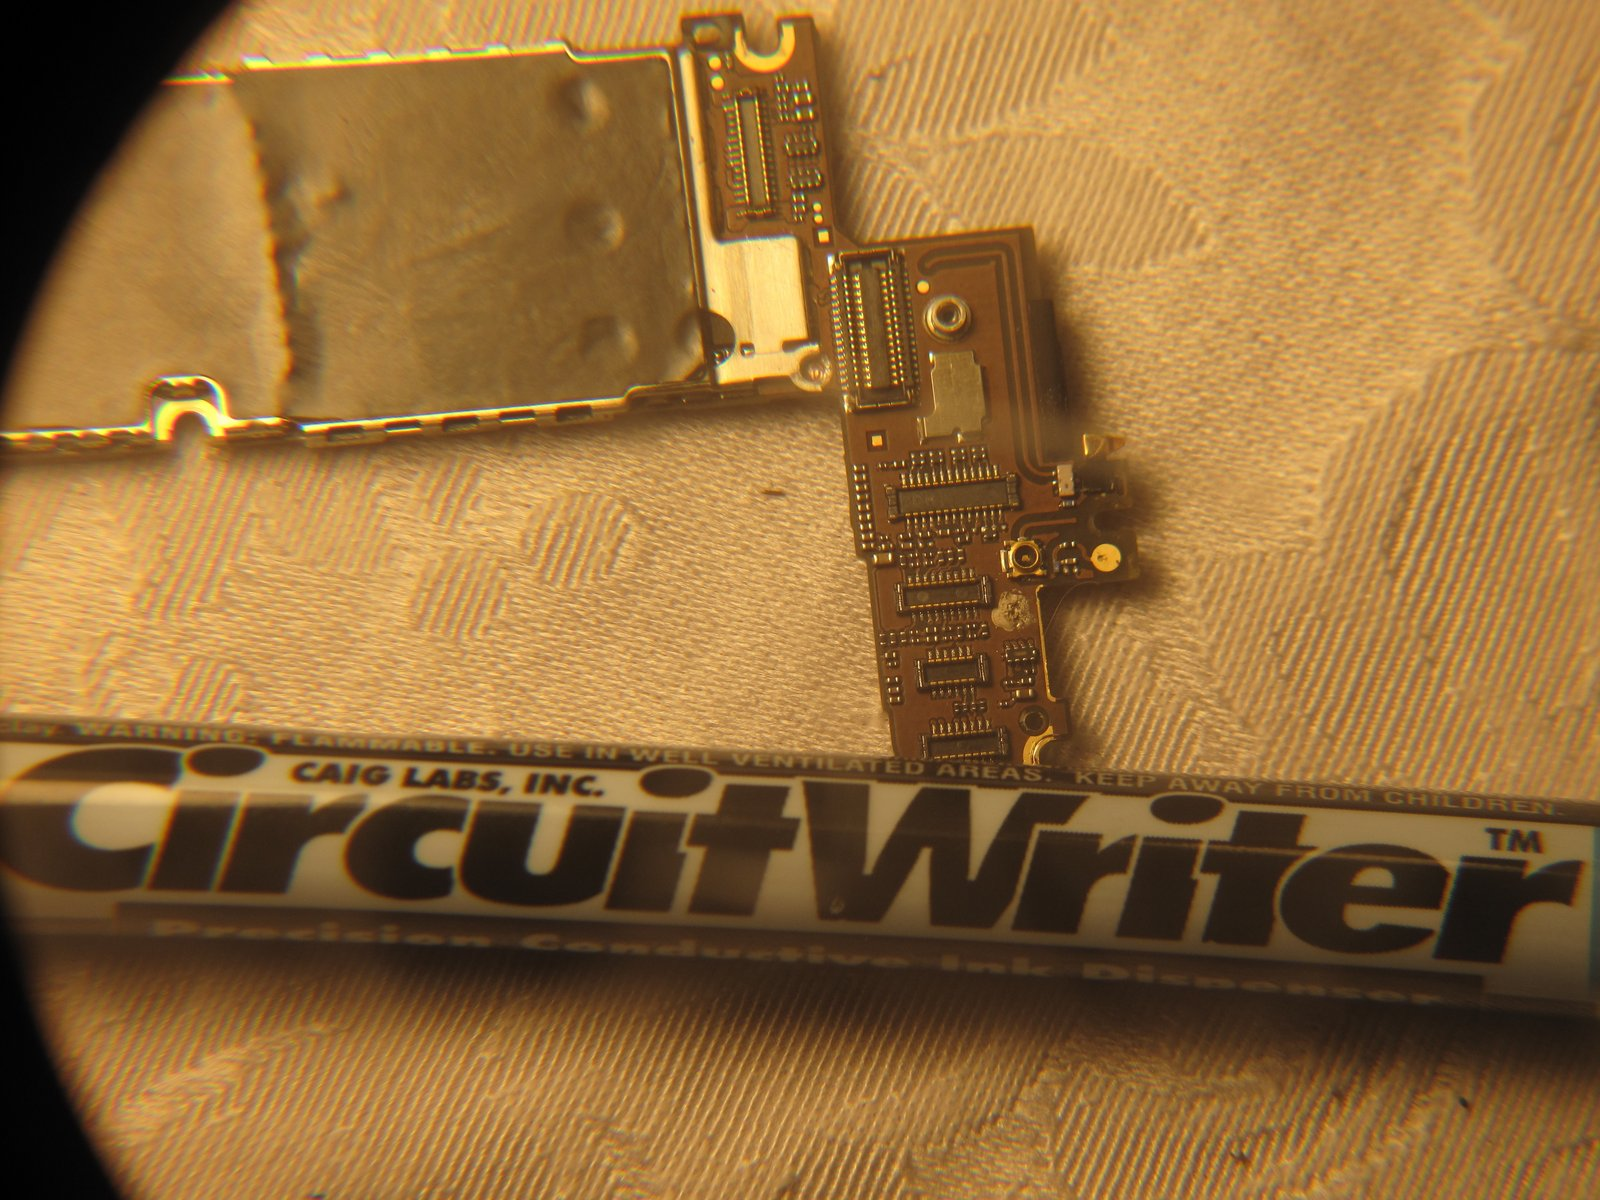 After Replacing Screen Camera App Now Stuck On Shutter Iphone 4 Have Ordered This Circuit Writer Pen Will Update Post To See If Ifixit